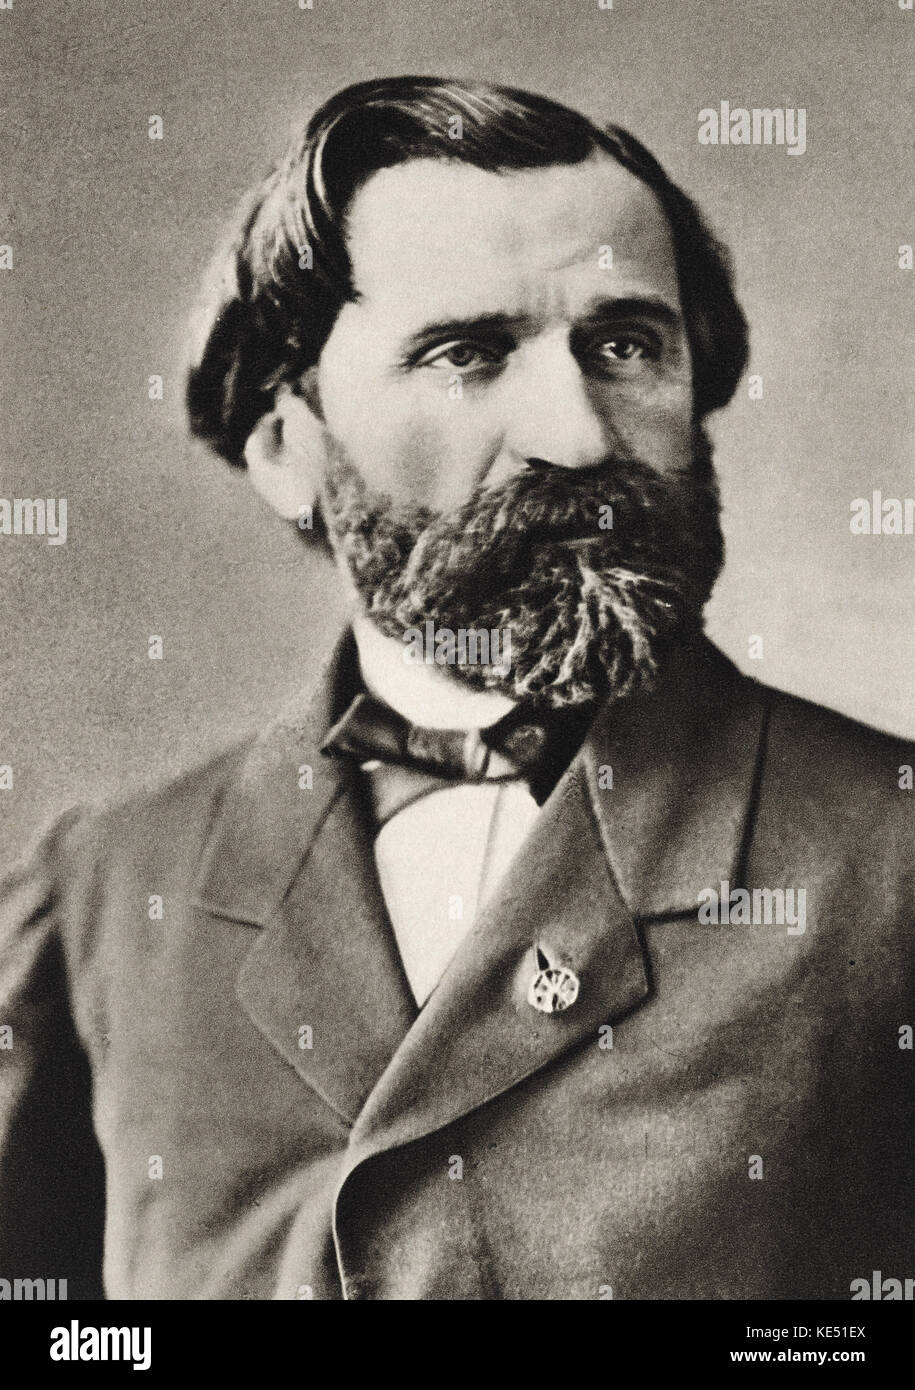 the life and times of italian operatic composer giuseppe verdi The influence of giuseppe verdi on italian opera and italian nationalism introduction giuseppe verdi , (october 9, 1813 - january 27, 1901) is undoubtedly one of the most important classical music composers in history.